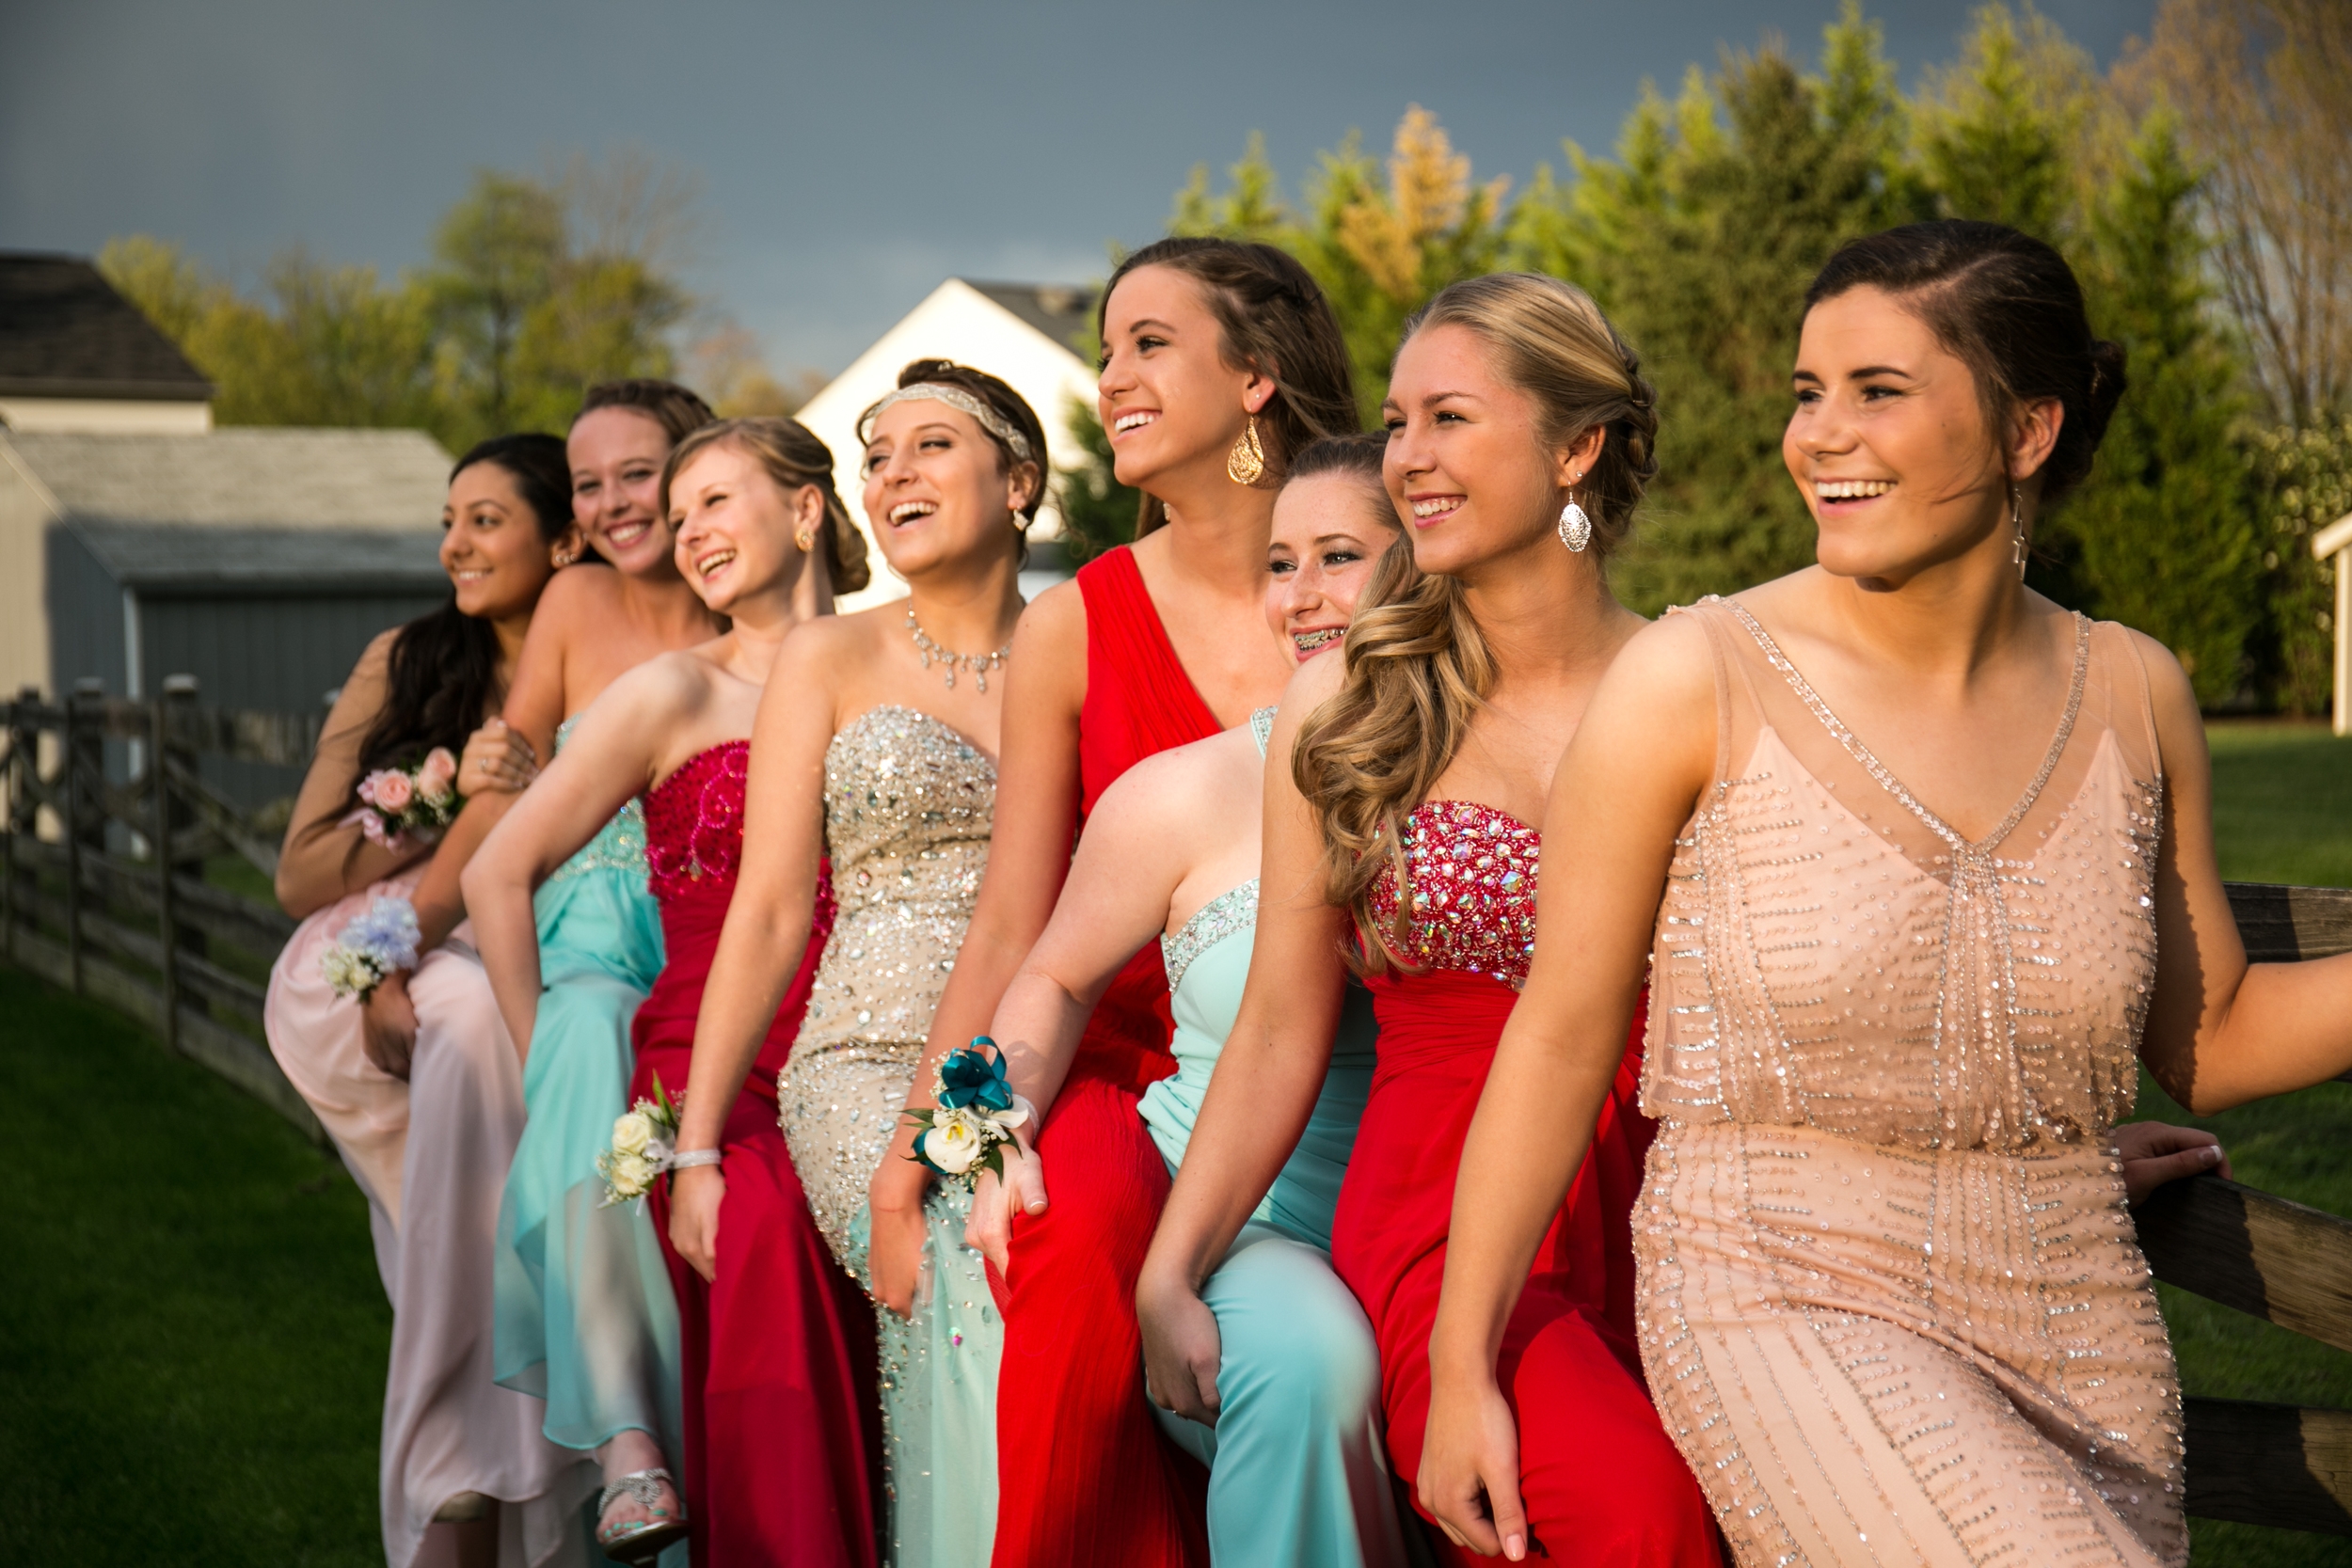 Mount-De-Sales-Pre-Prom-May-2014-35.jpg